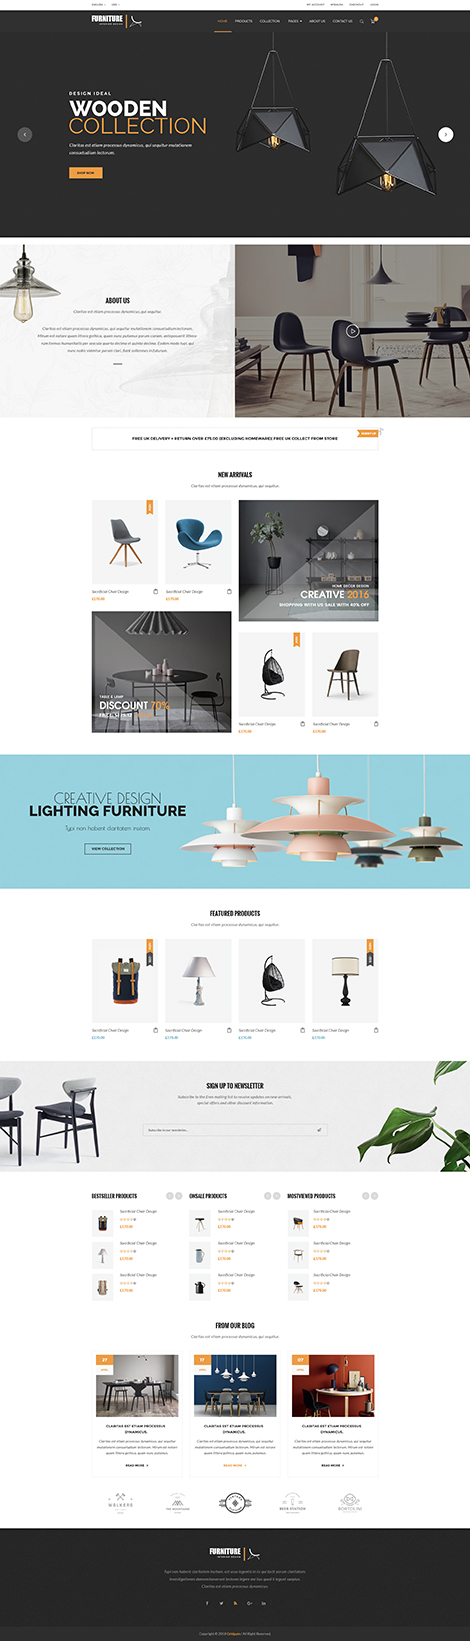 Furniture store Bootstrap template ID: 300111938